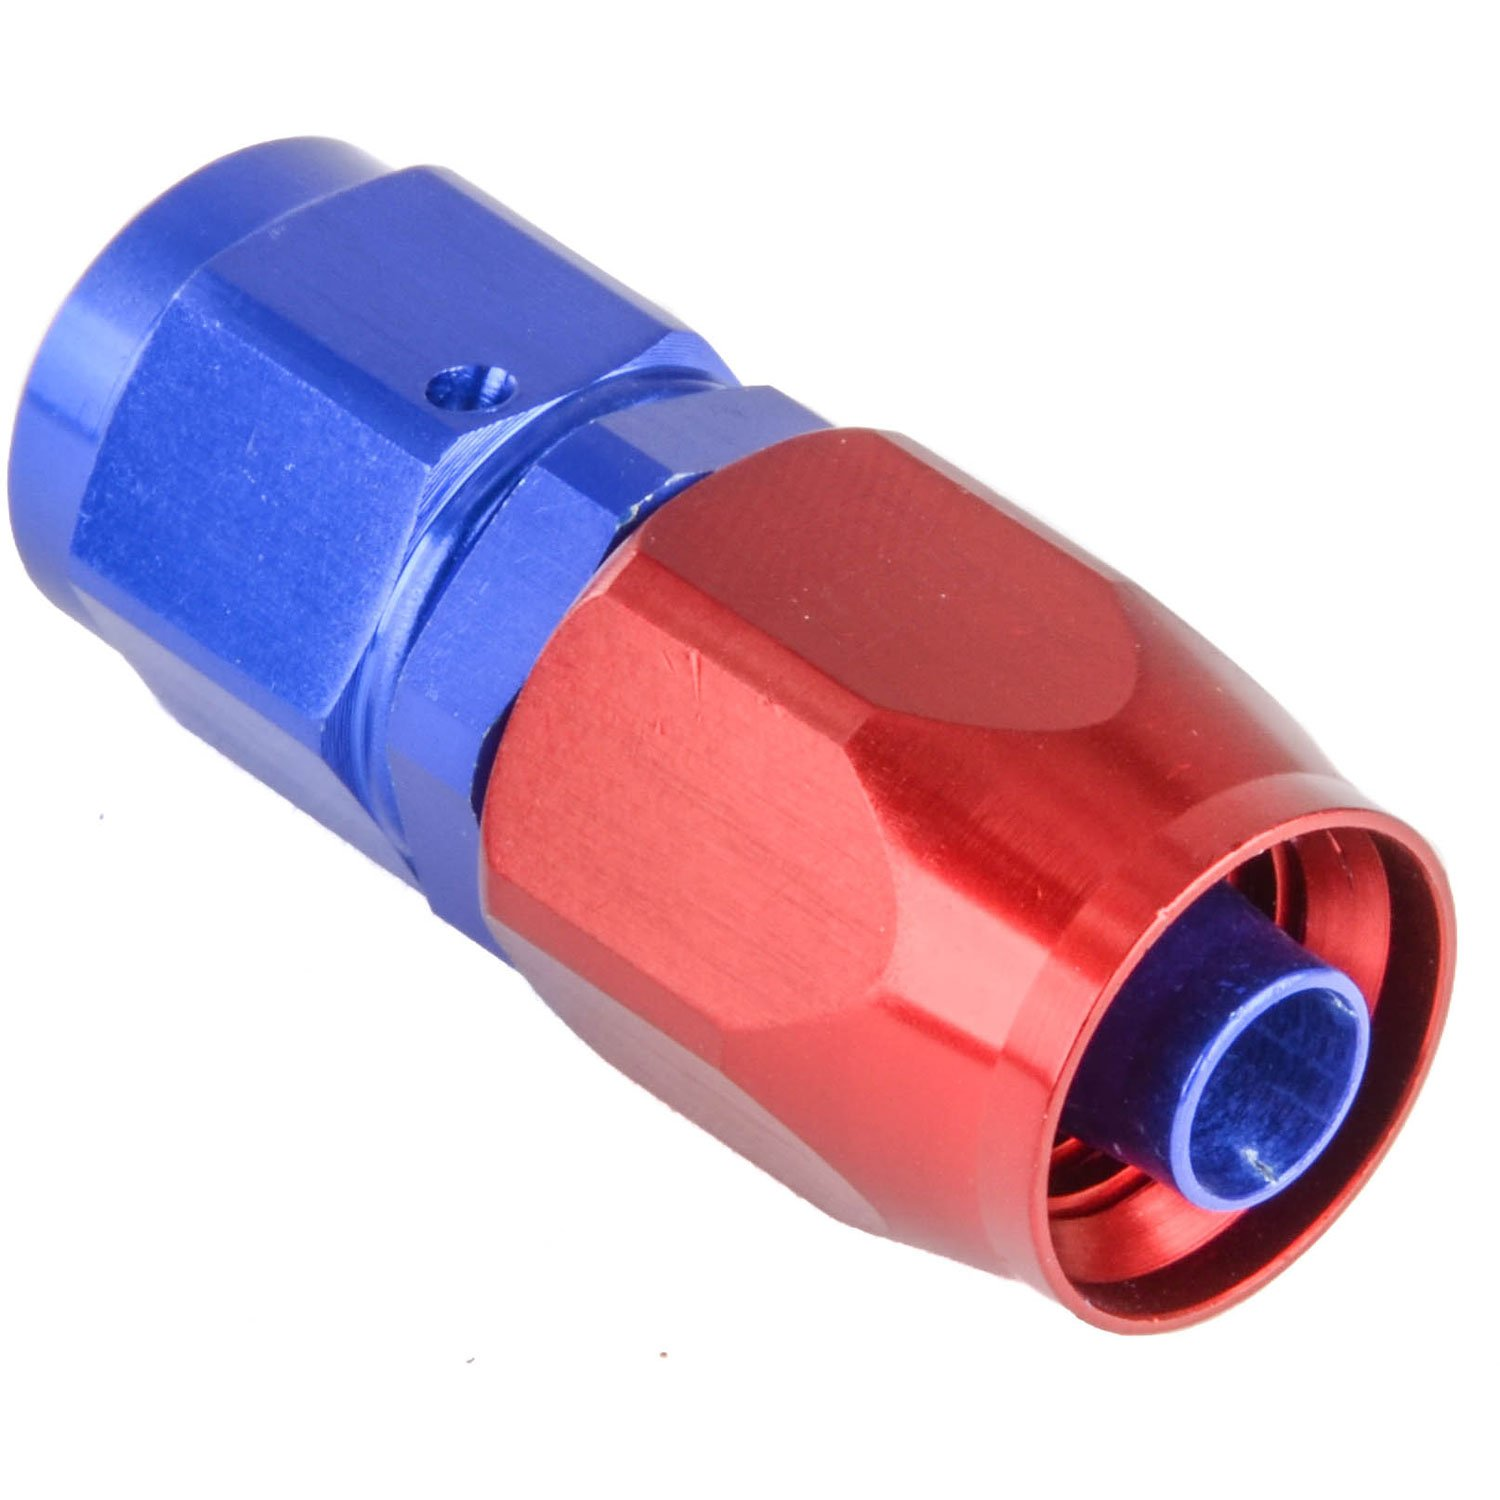 Russell 610020 - Russell AN Hose End Fittings - Red/Blue